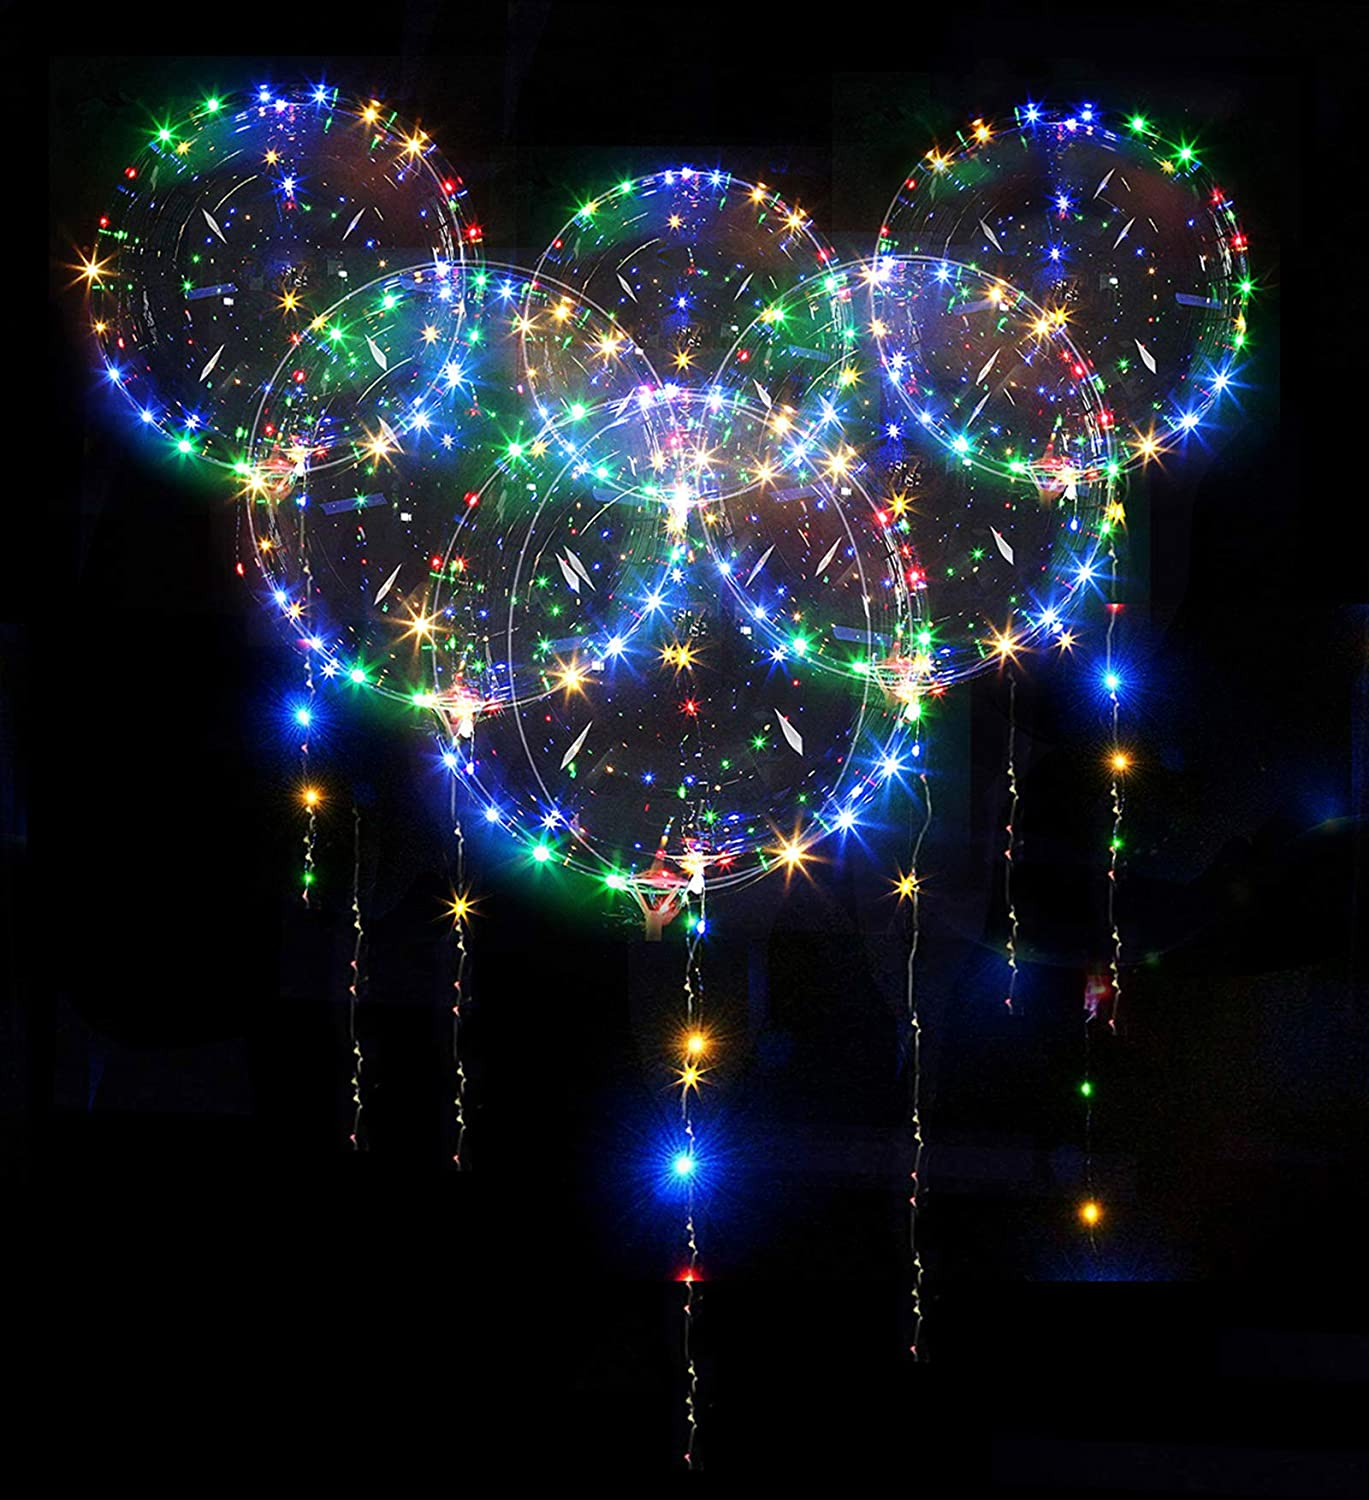 Zodight LED balloons 1